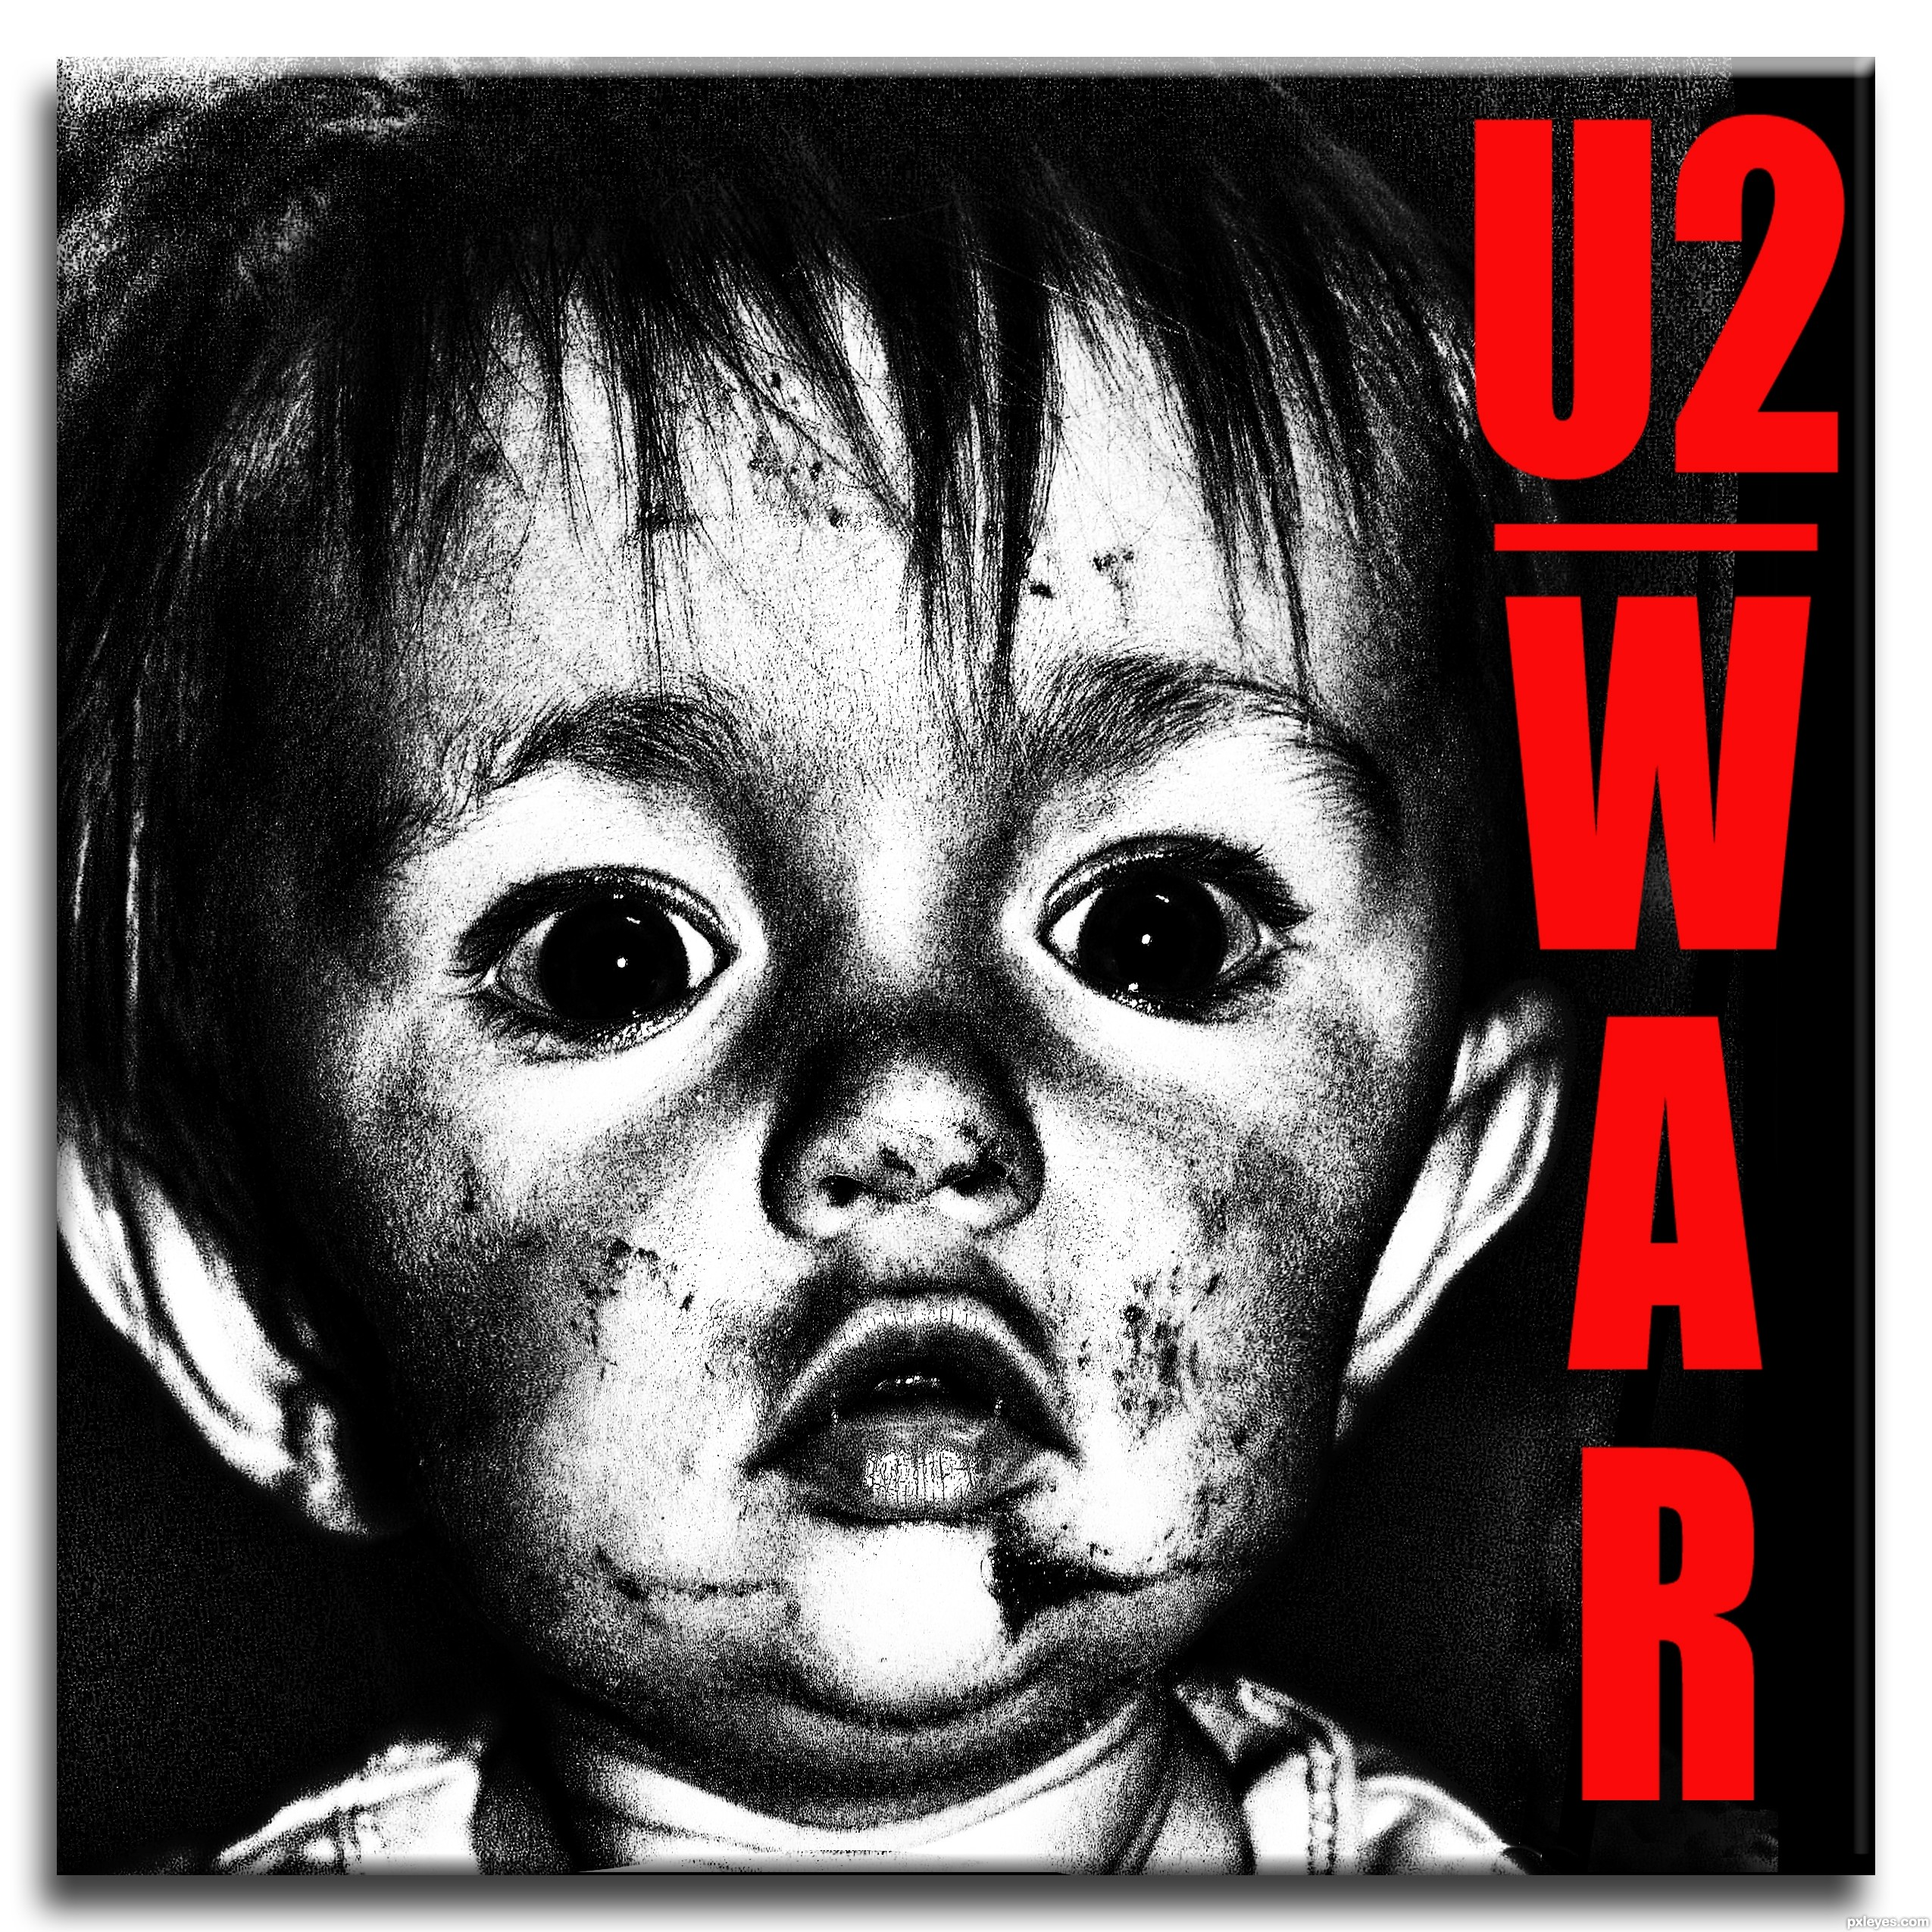 Peter rowen appears on the covers of three, war, the best of 1980-1990, and early demos